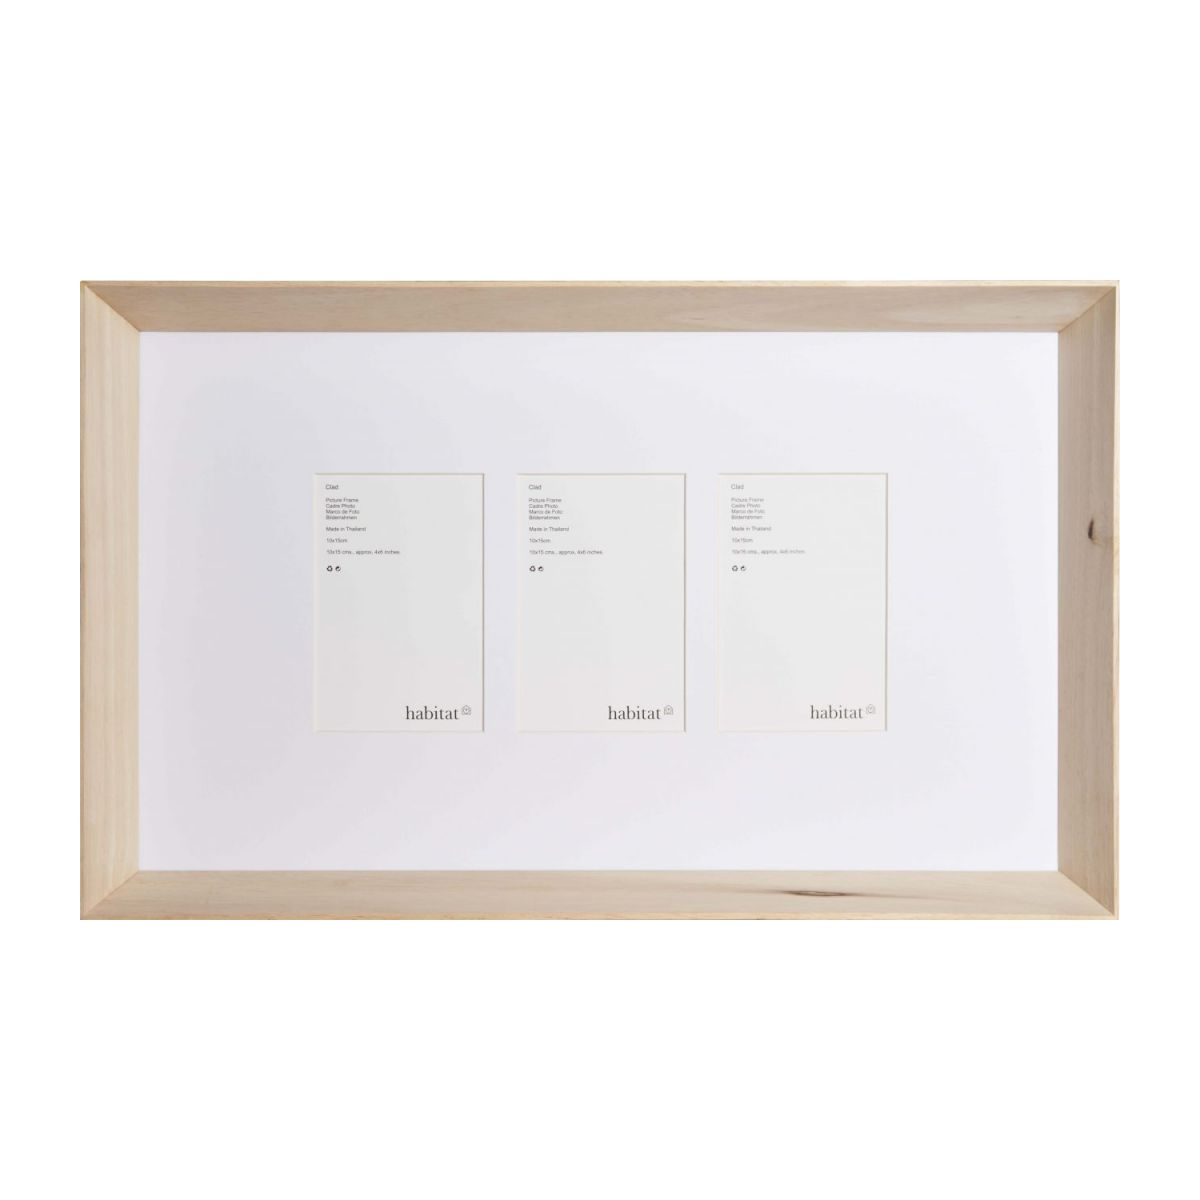 Wooden photo frame 3*10x15 n°3